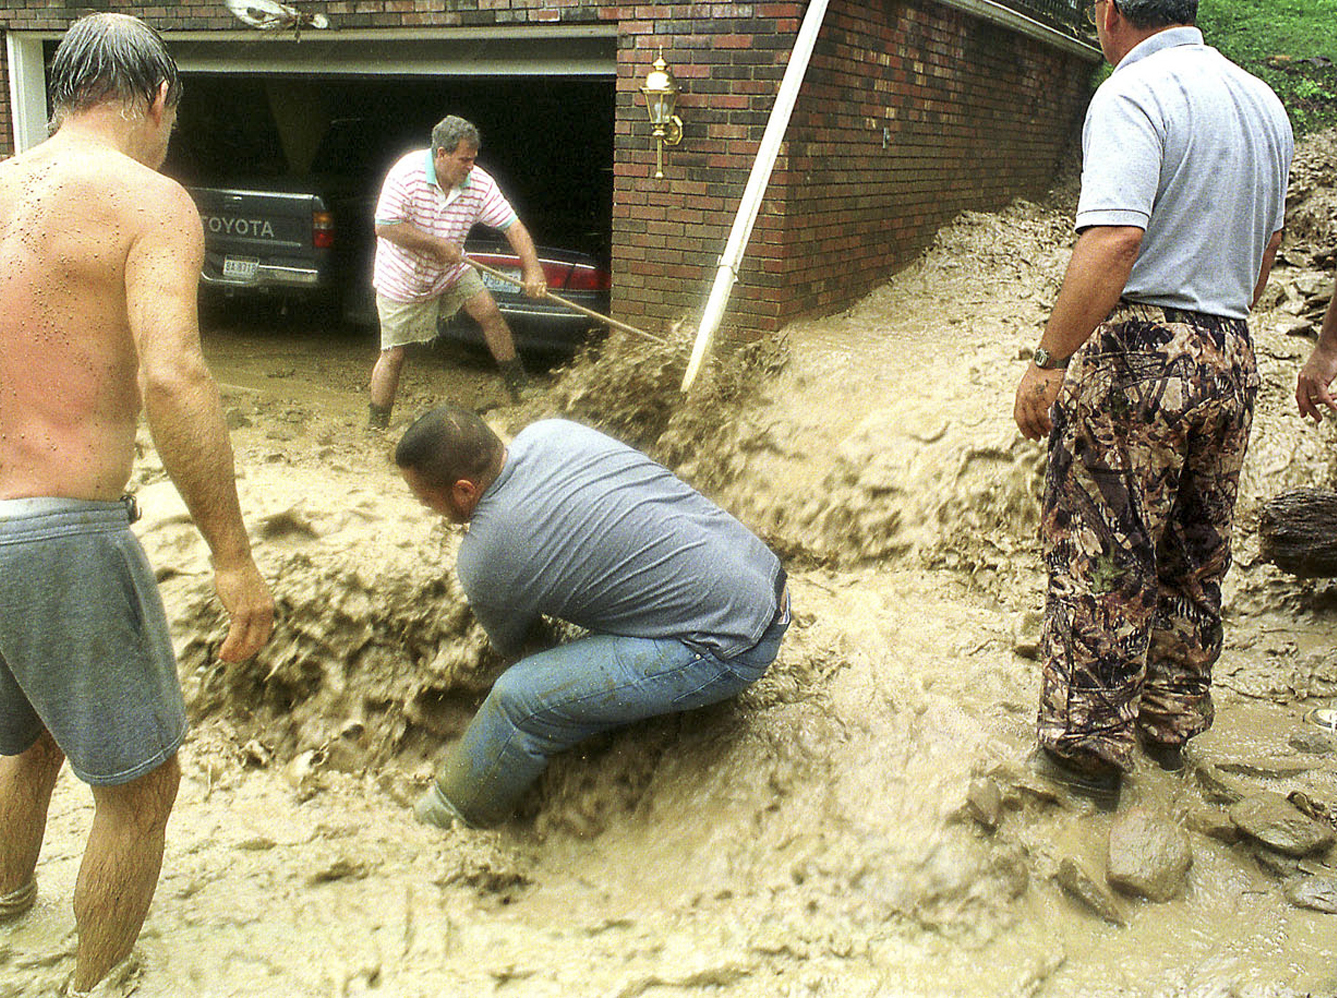 Attempting to hold back the flooding from damaging the home